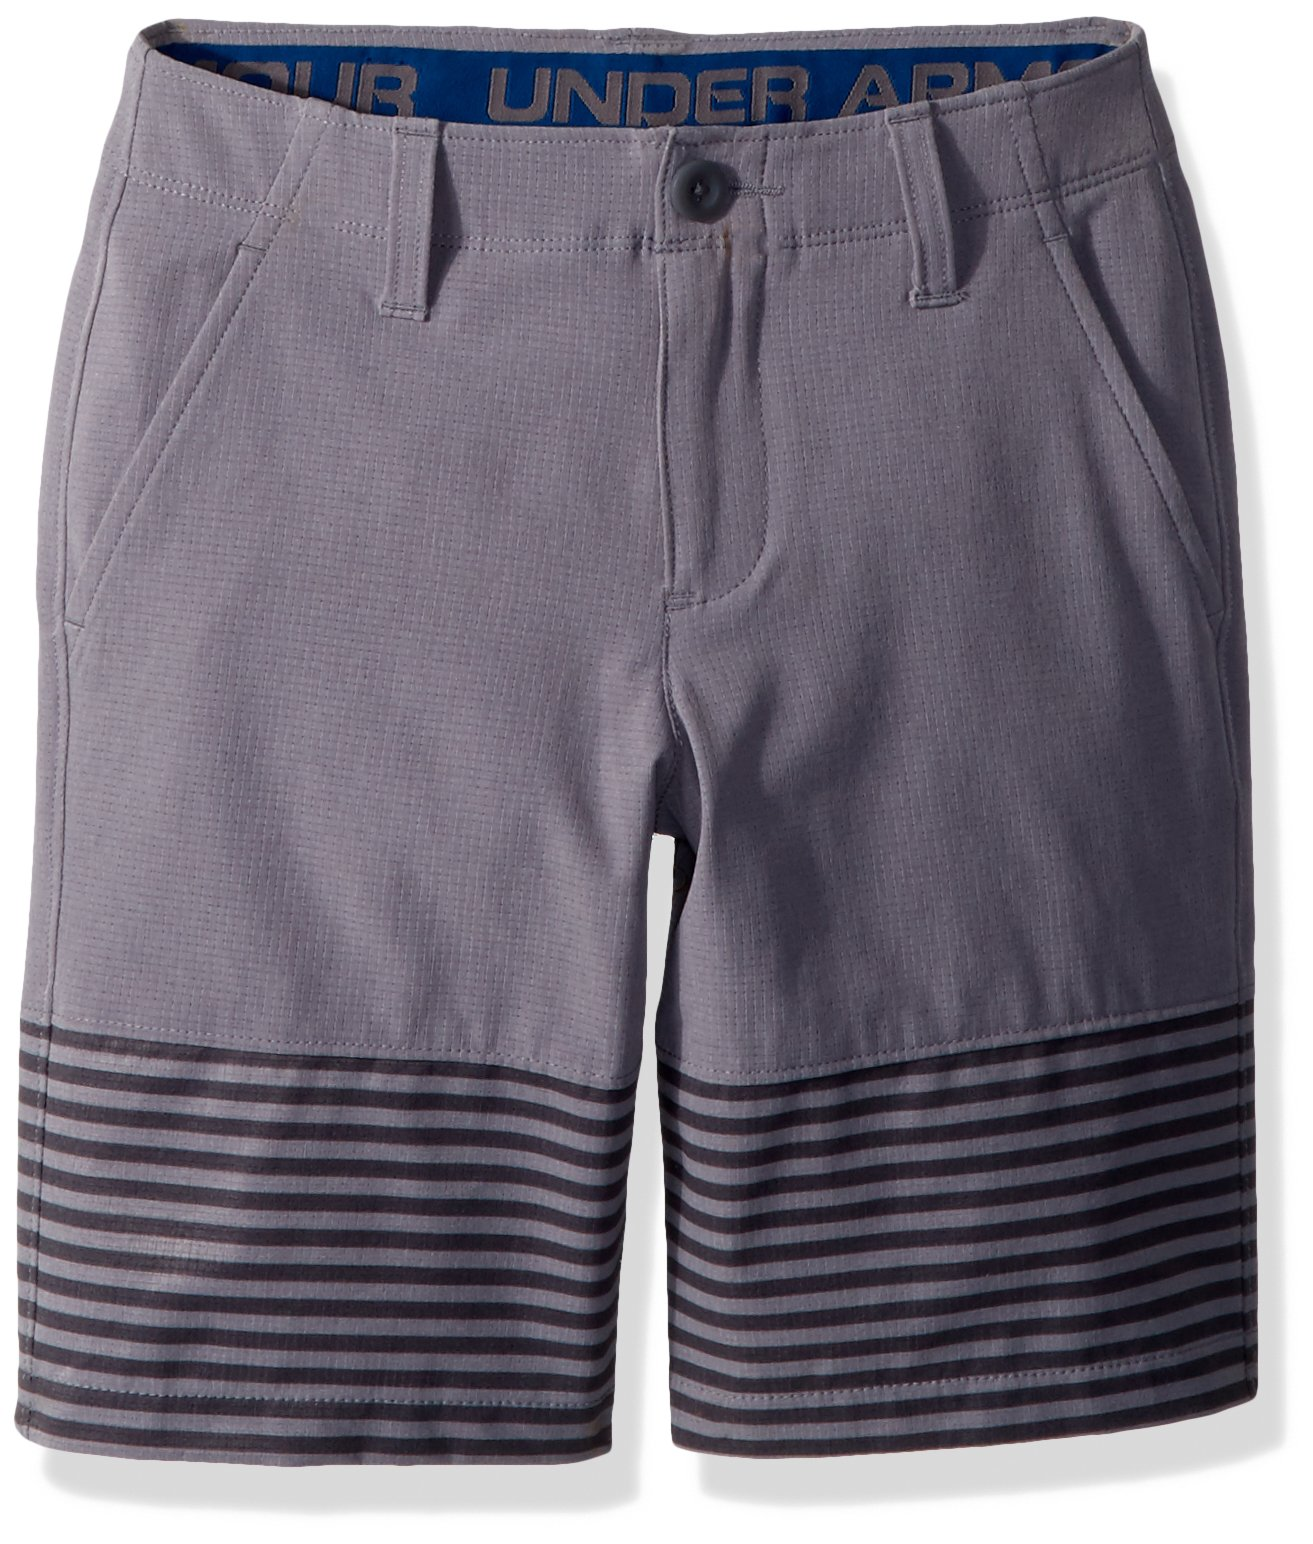 Under Armour Boys' Match Play Vented Shorts, Zinc Gray (513)/Zinc Gray, 18 by Under Armour